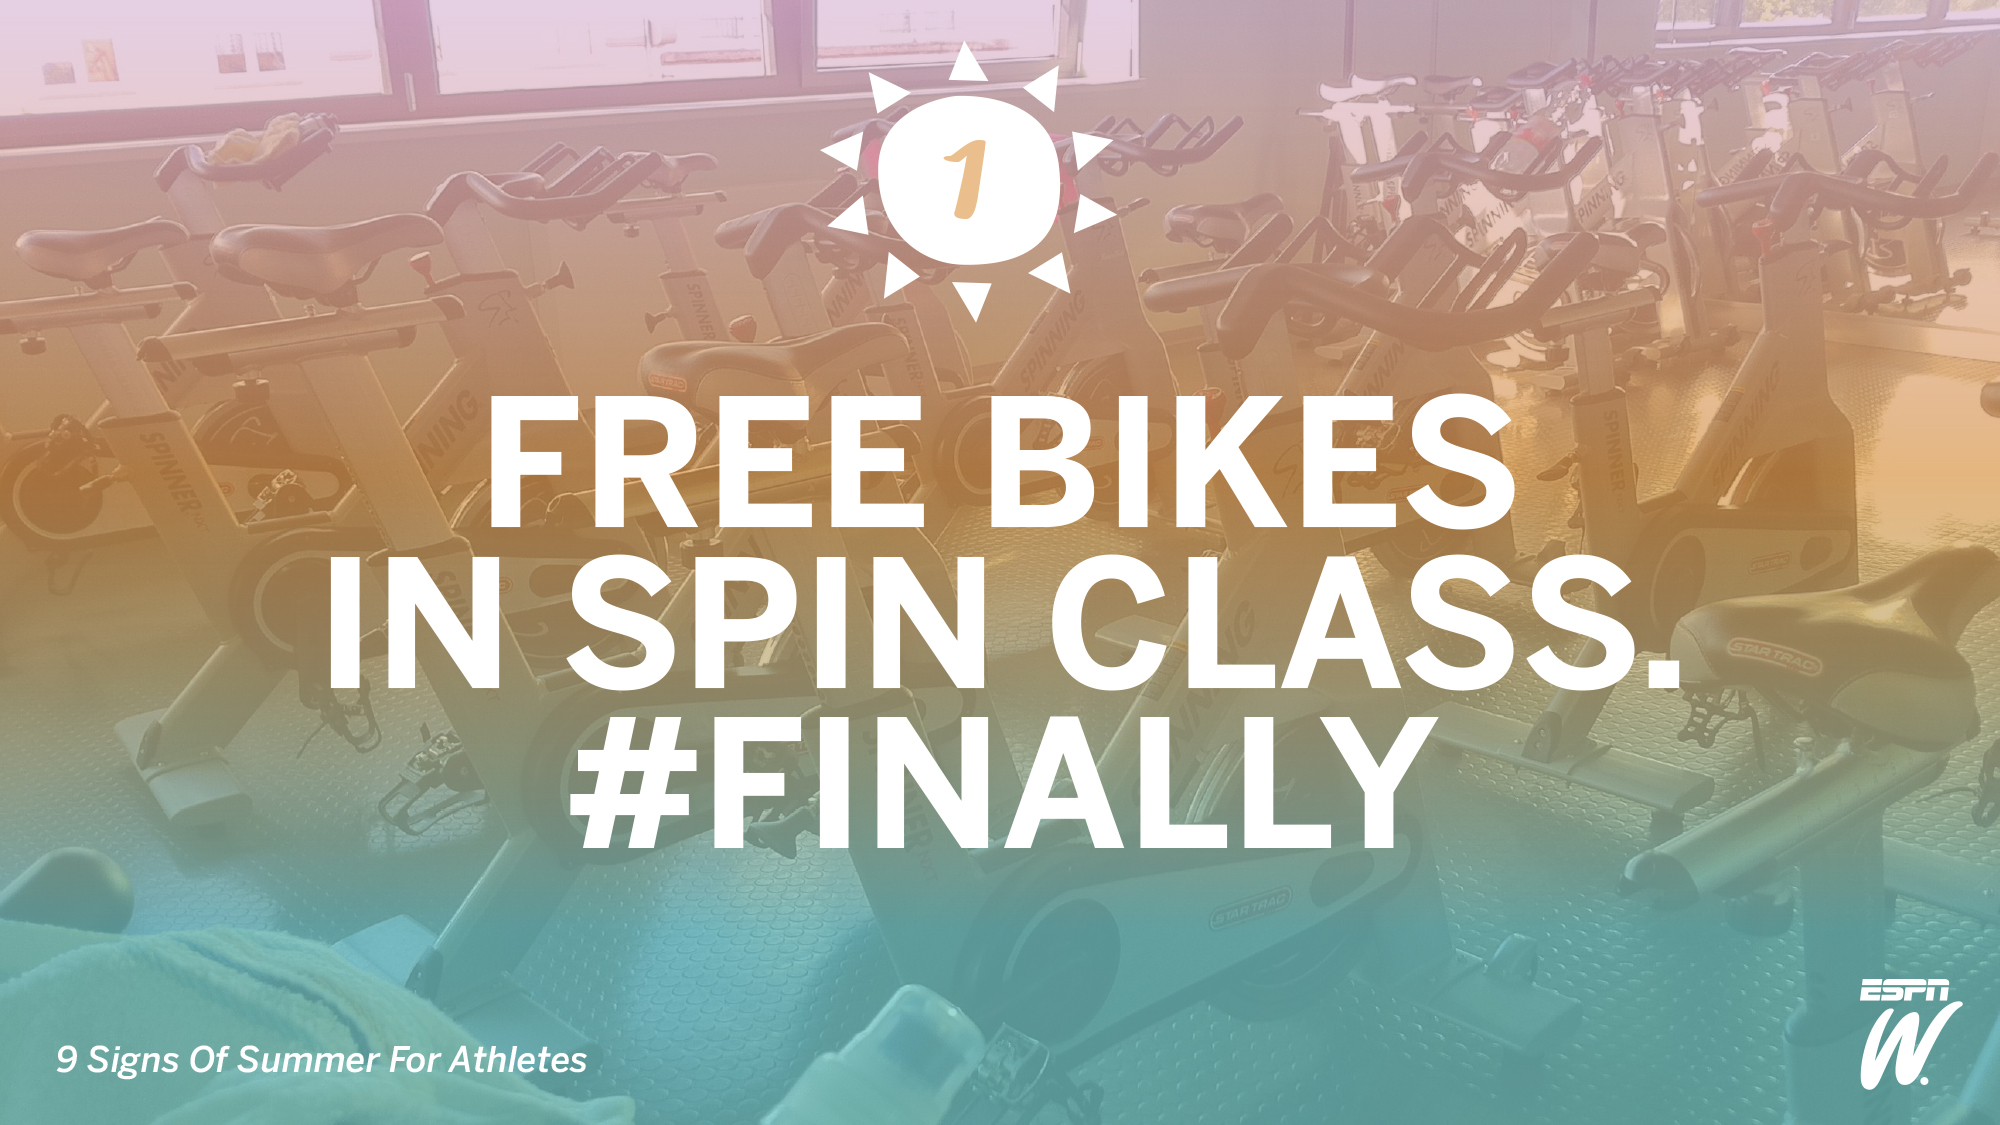 No. 1: Free Bikes In Spin Class